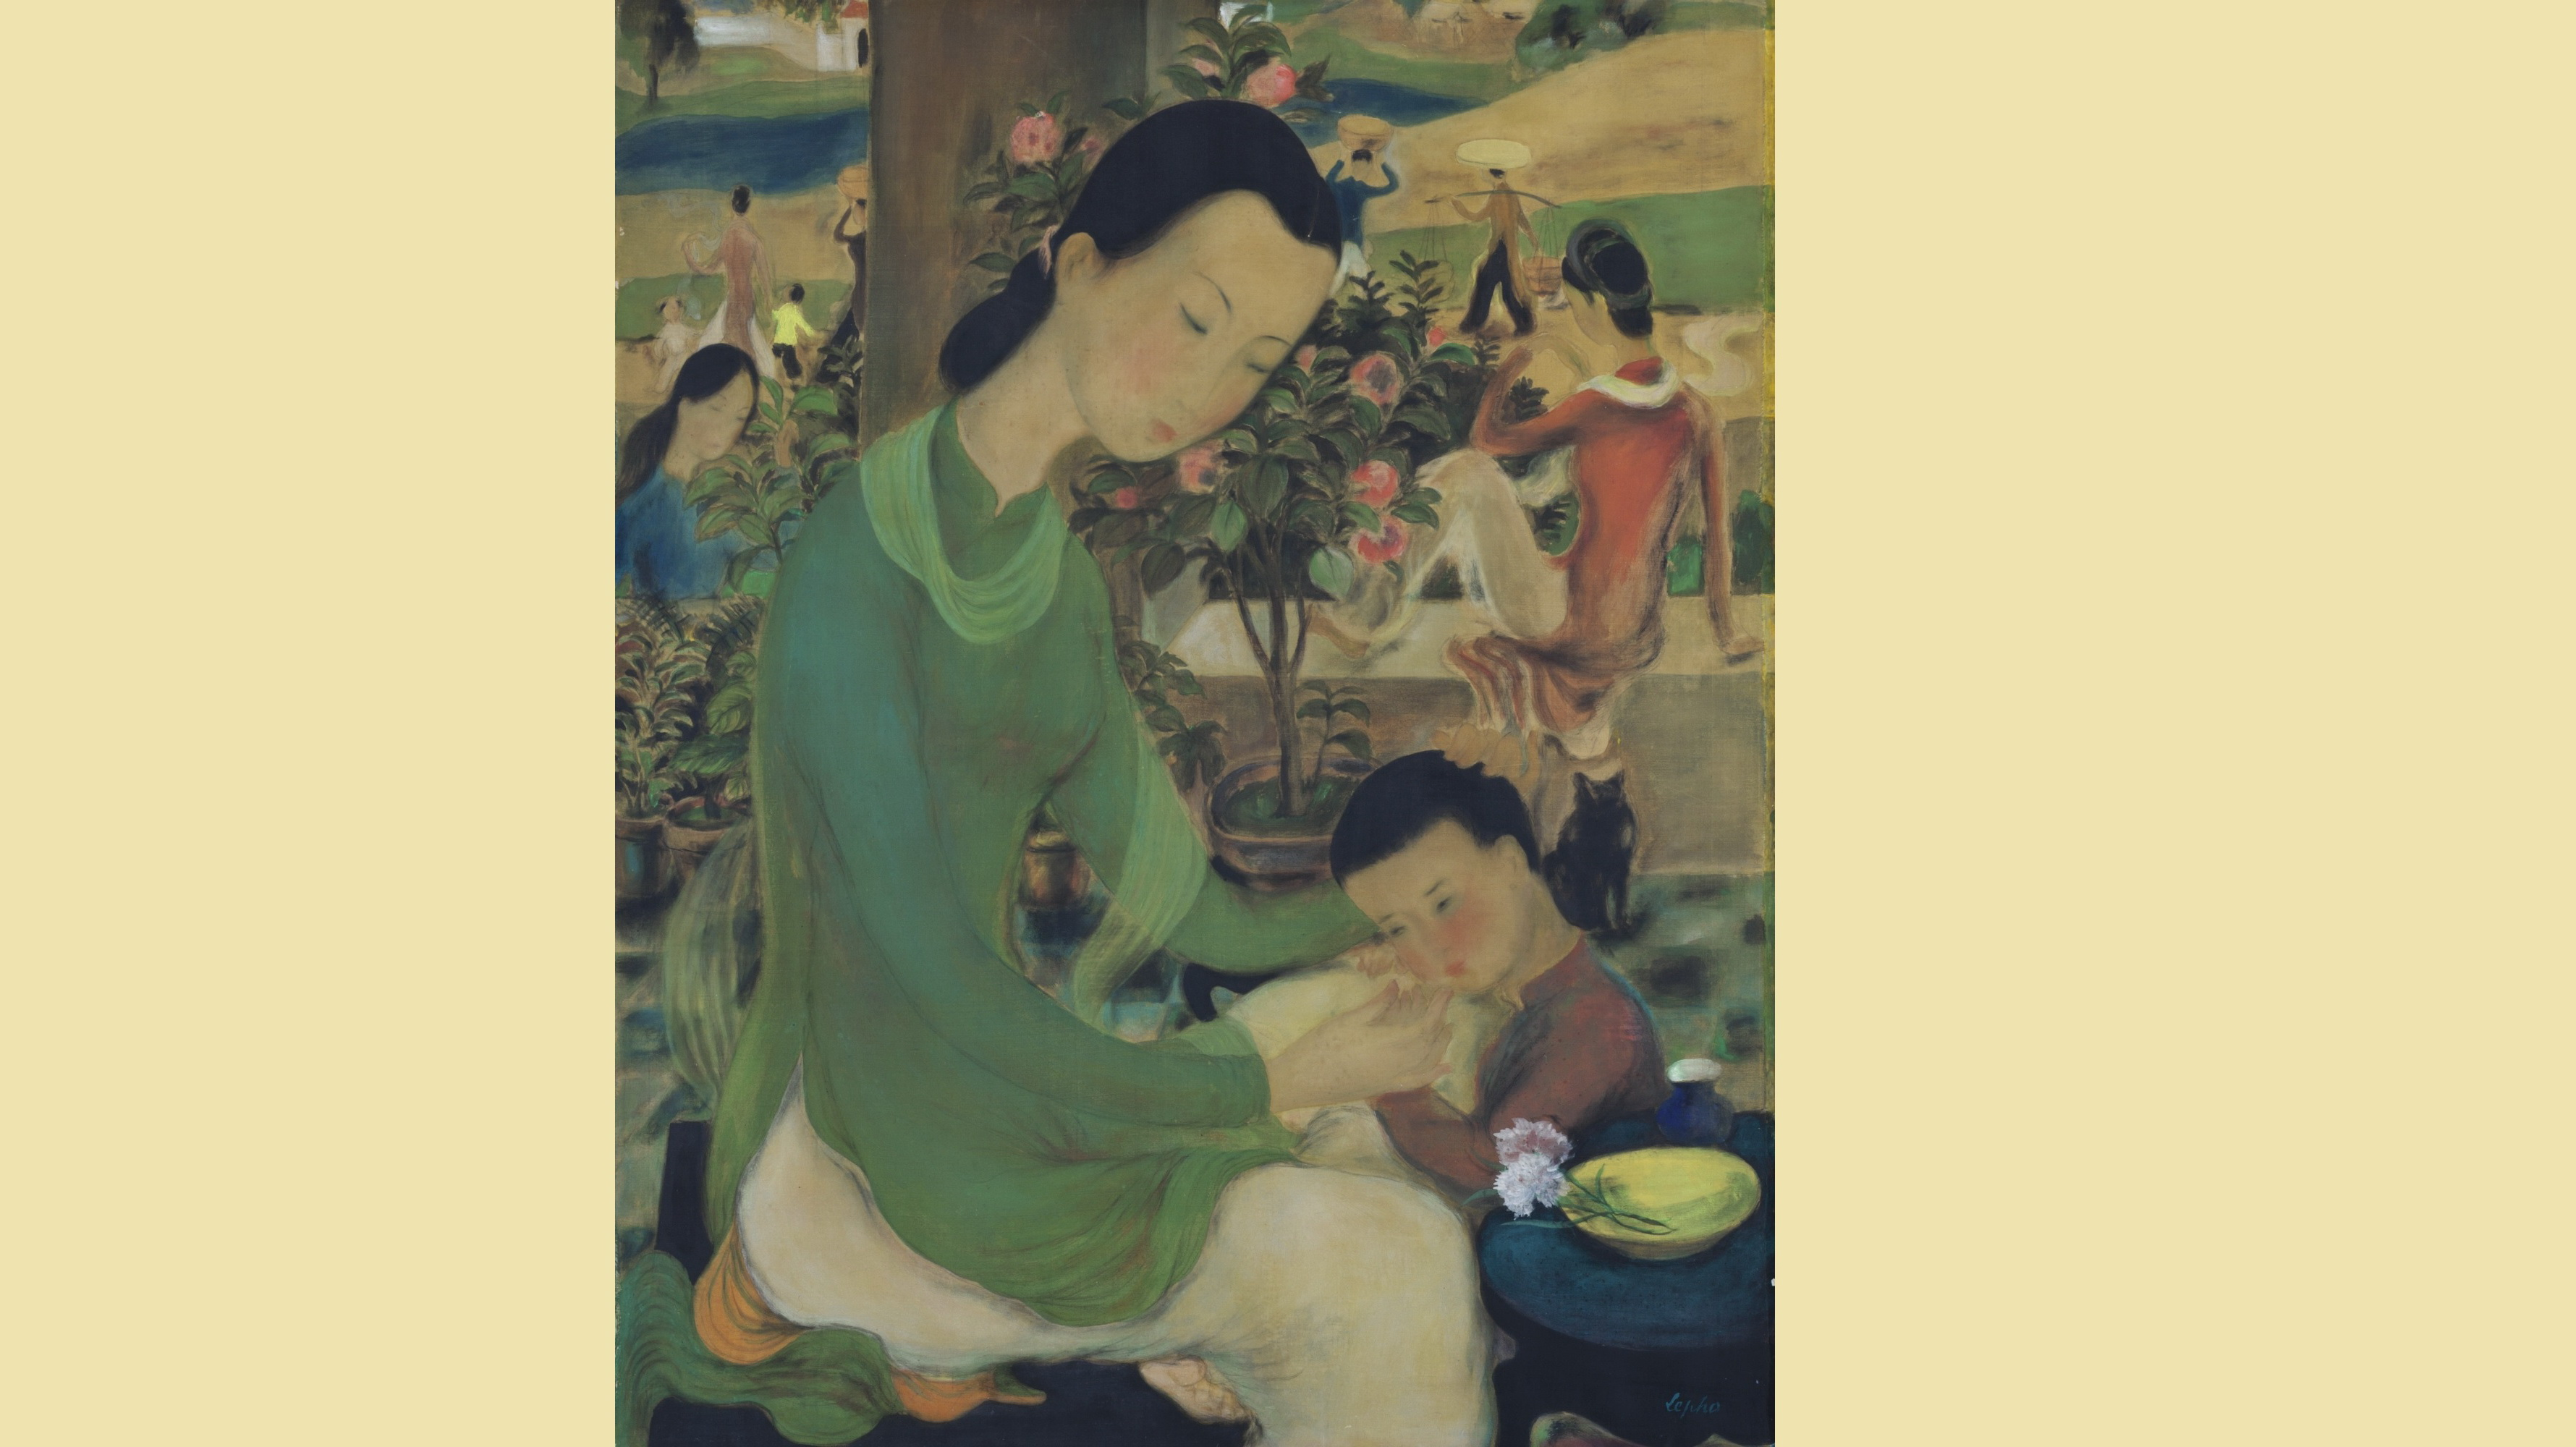 Vietnamese painting sold for record $1.2 million